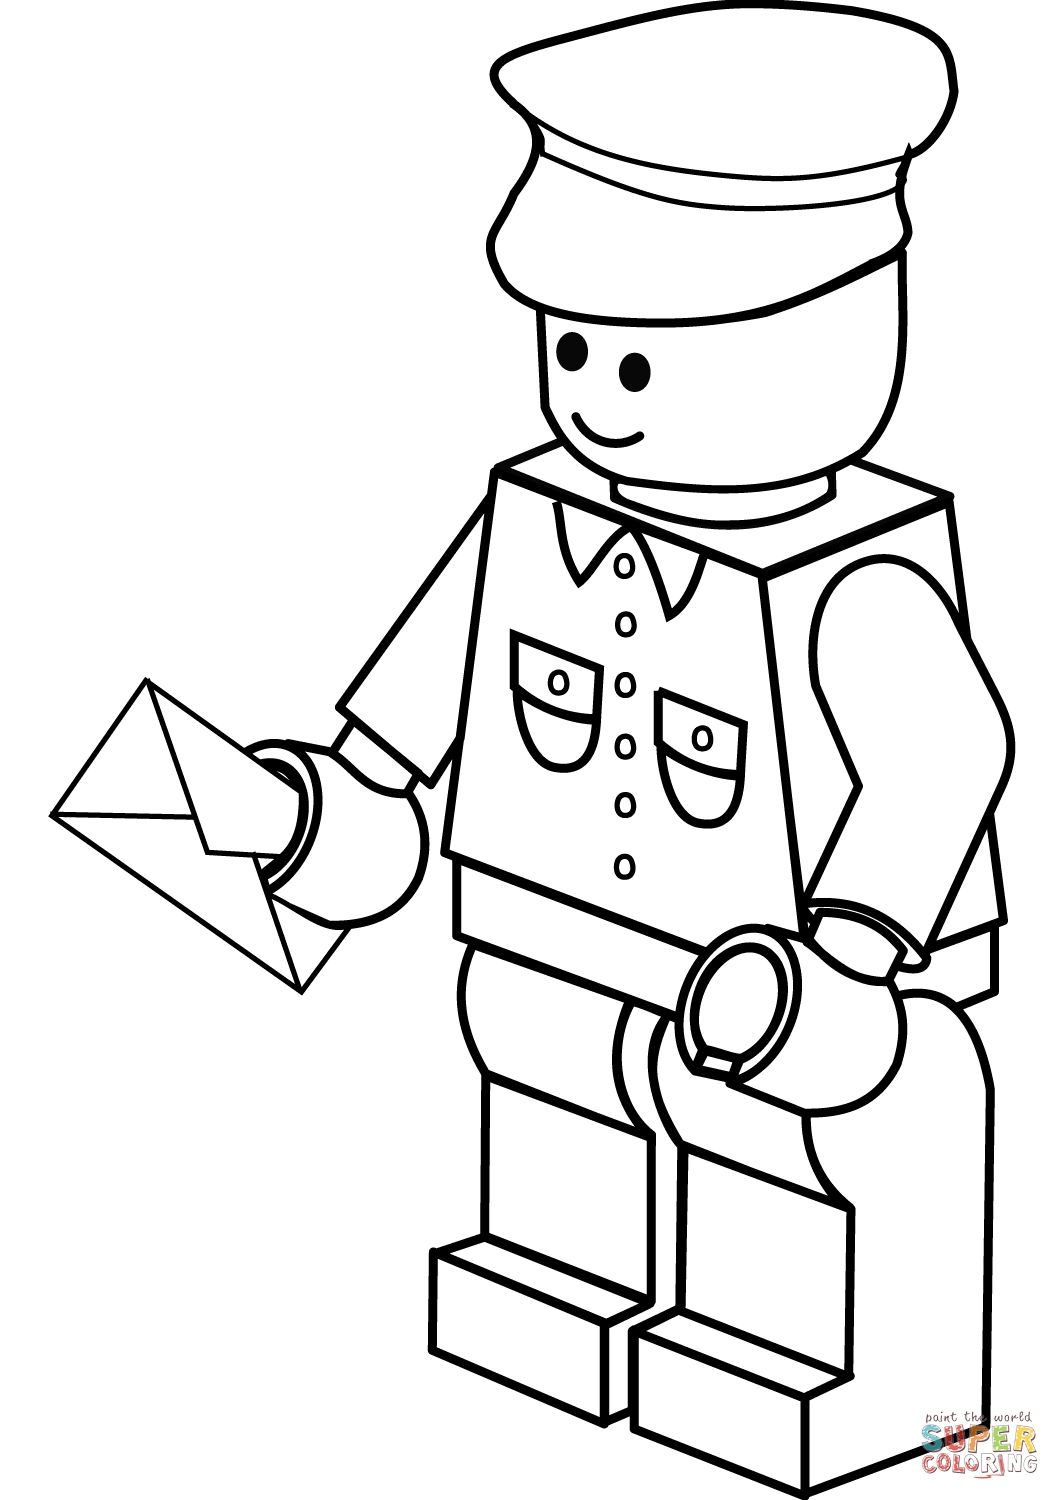 lego printable coloring pages - lego postman